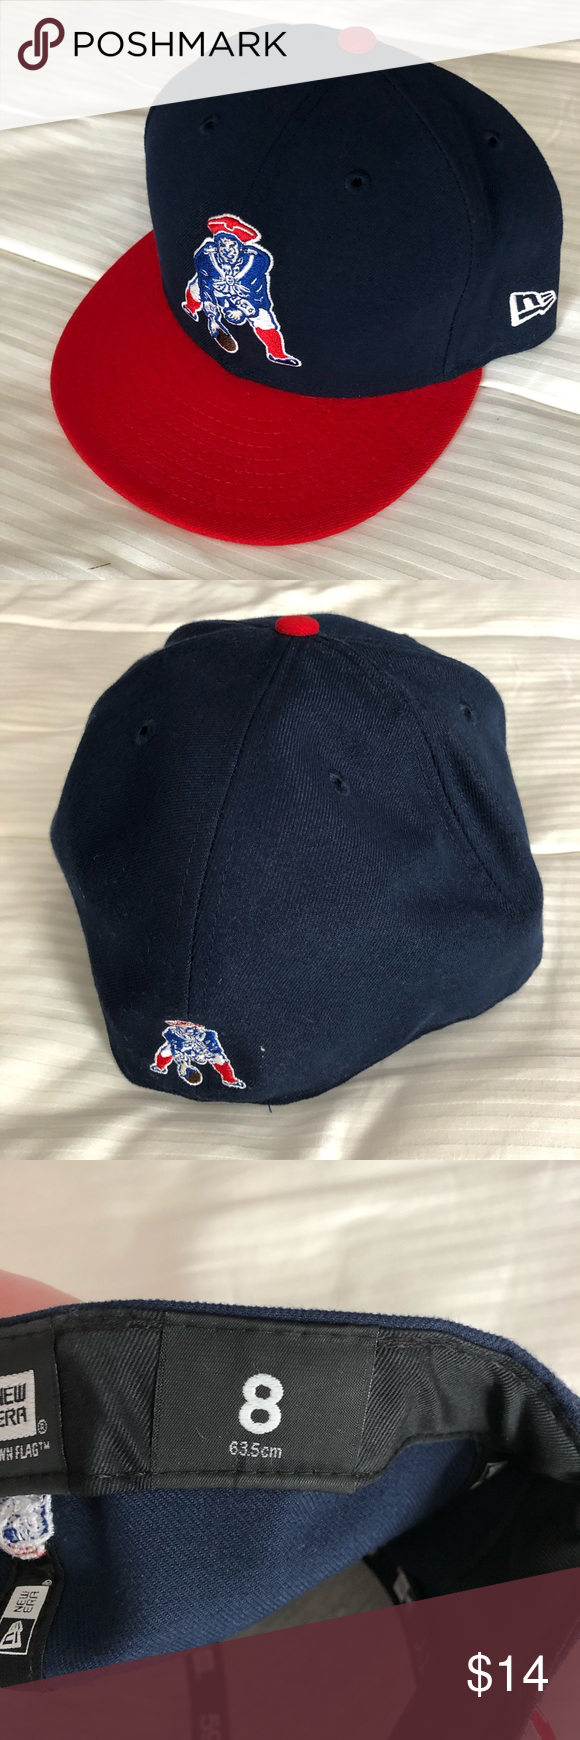 New England Patriots New Era 59fifty Fitted Hat Fitted Hats New Era 59fifty New Era